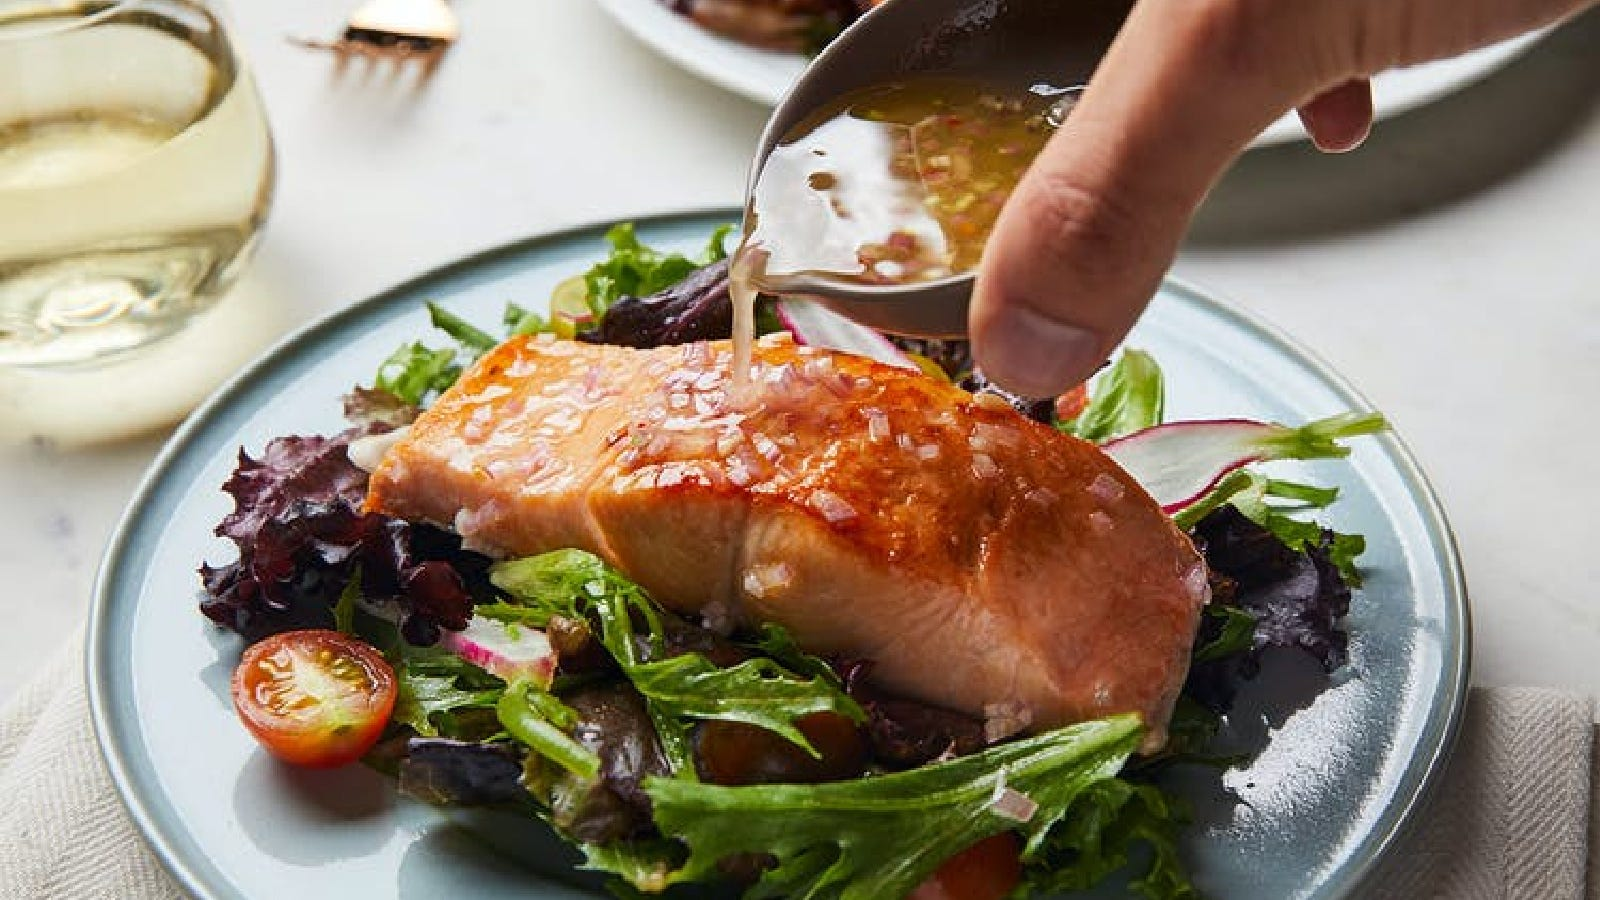 An image of a salmon salad being topped with a housemade pickle brine vinaigrette.